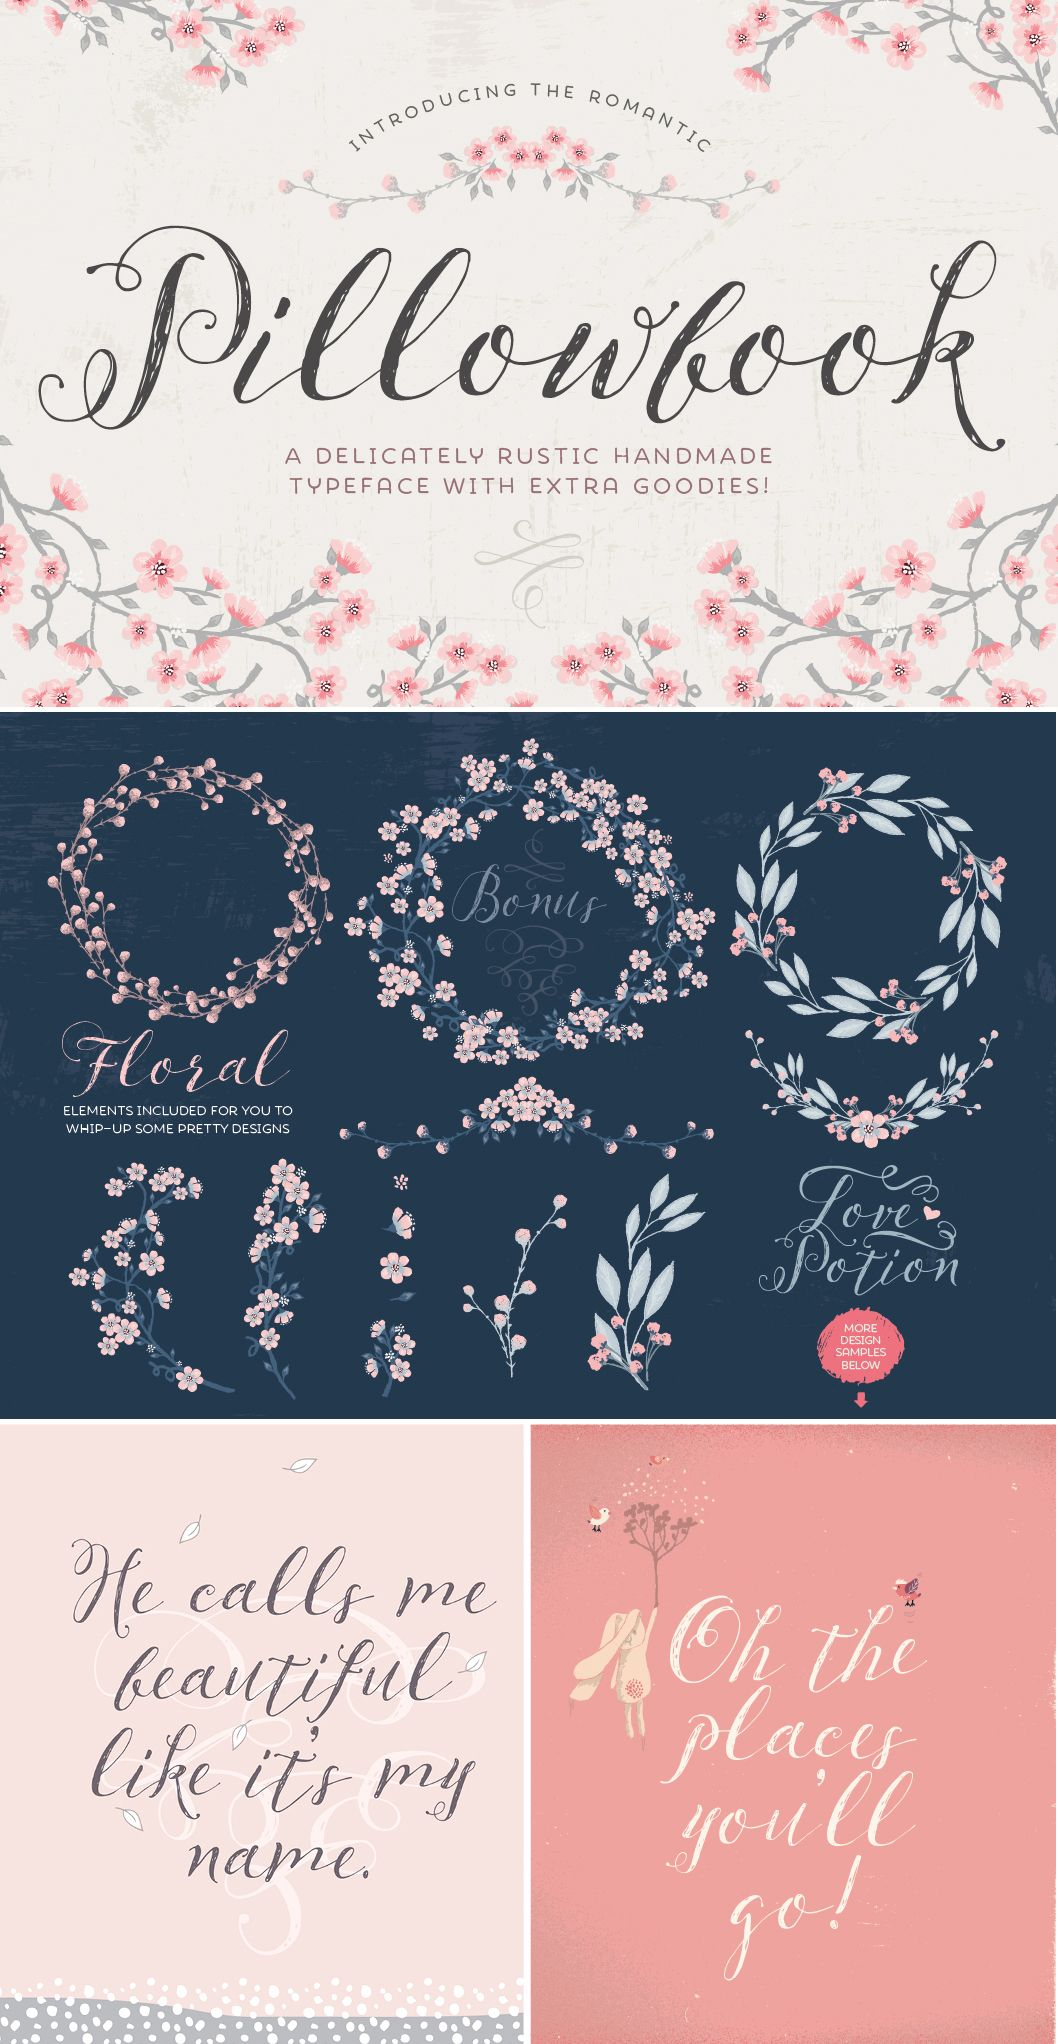 Pillowbook typeface + Extras! by Lisa Glanz on Creative Market #typography #lettering #type #designtoold #download